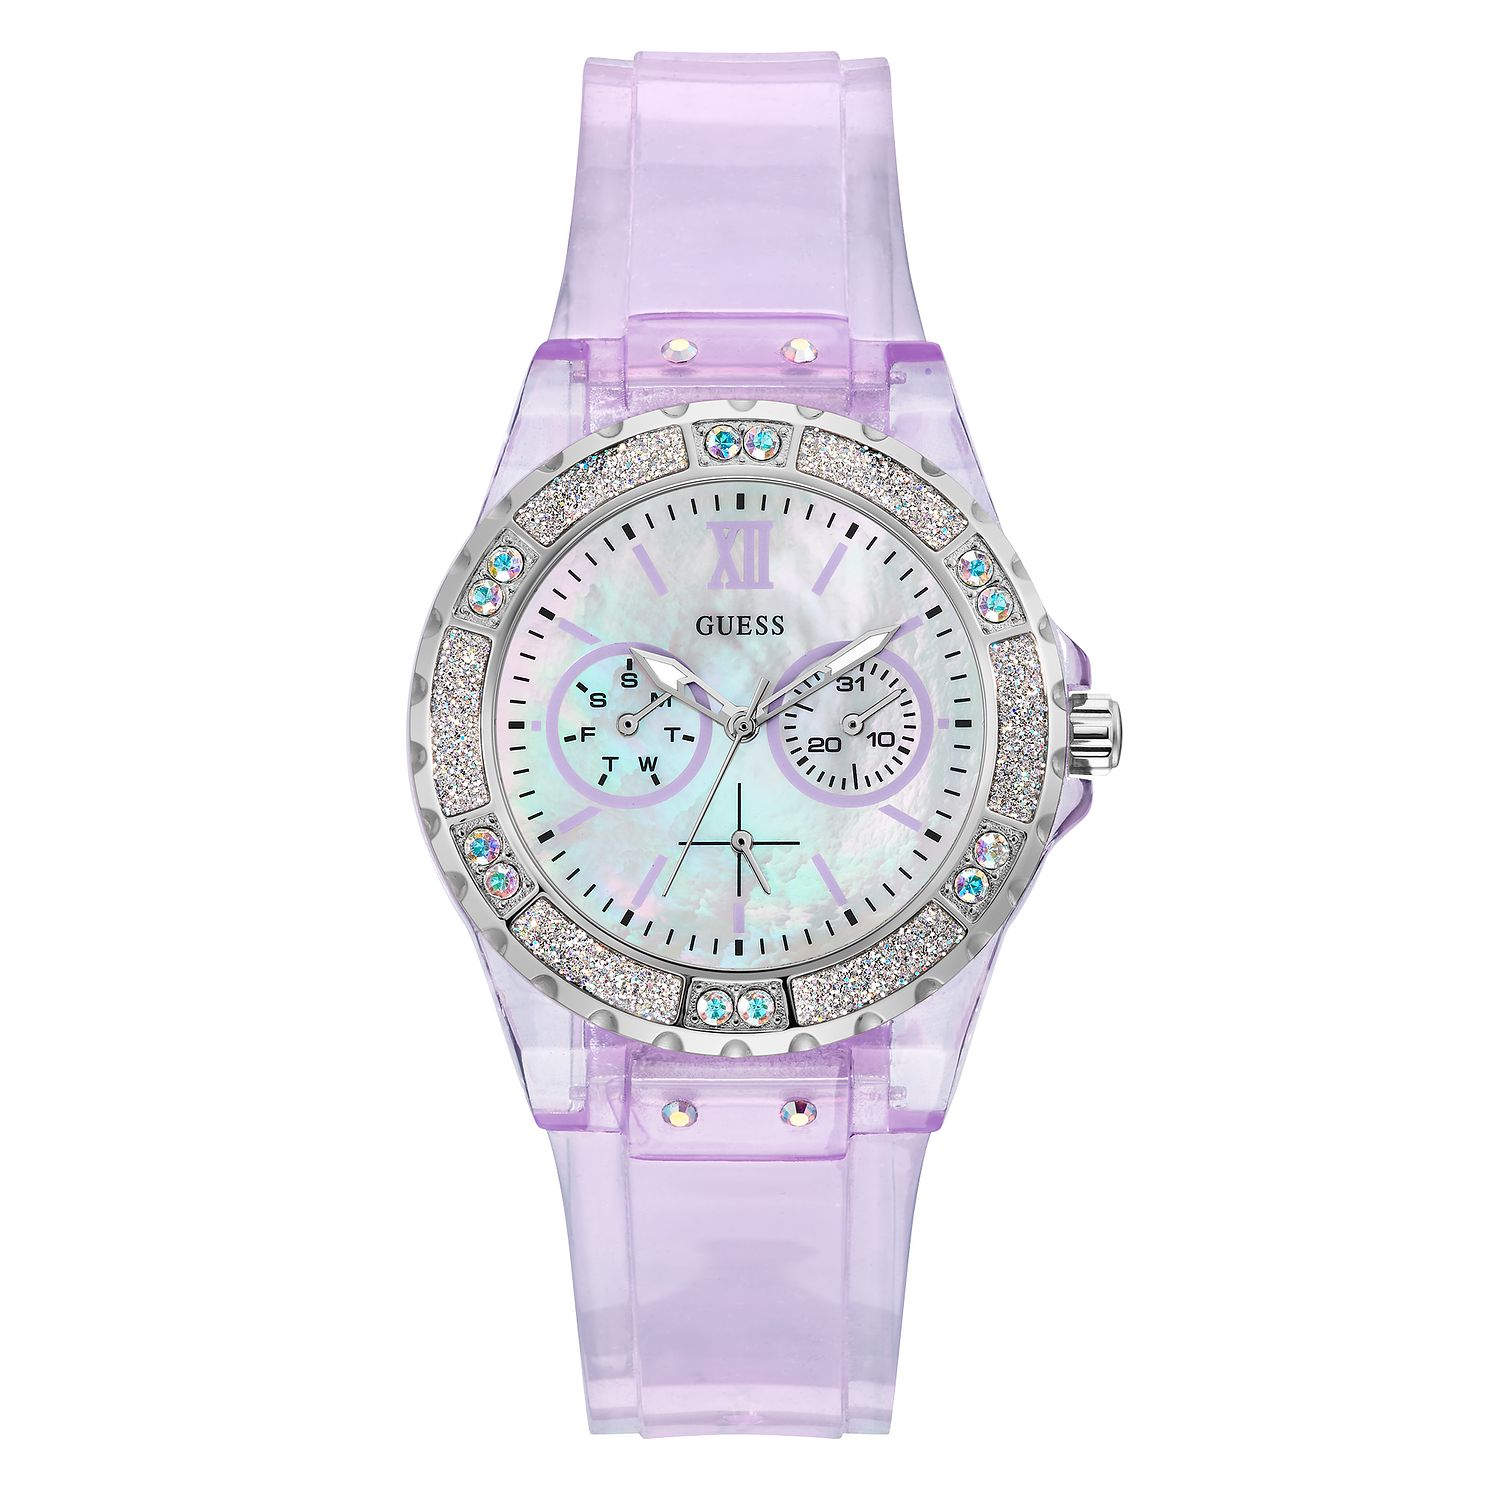 Guess Limelight Crystal Ladies' Purple PU Strap Watch - Product number 5190983